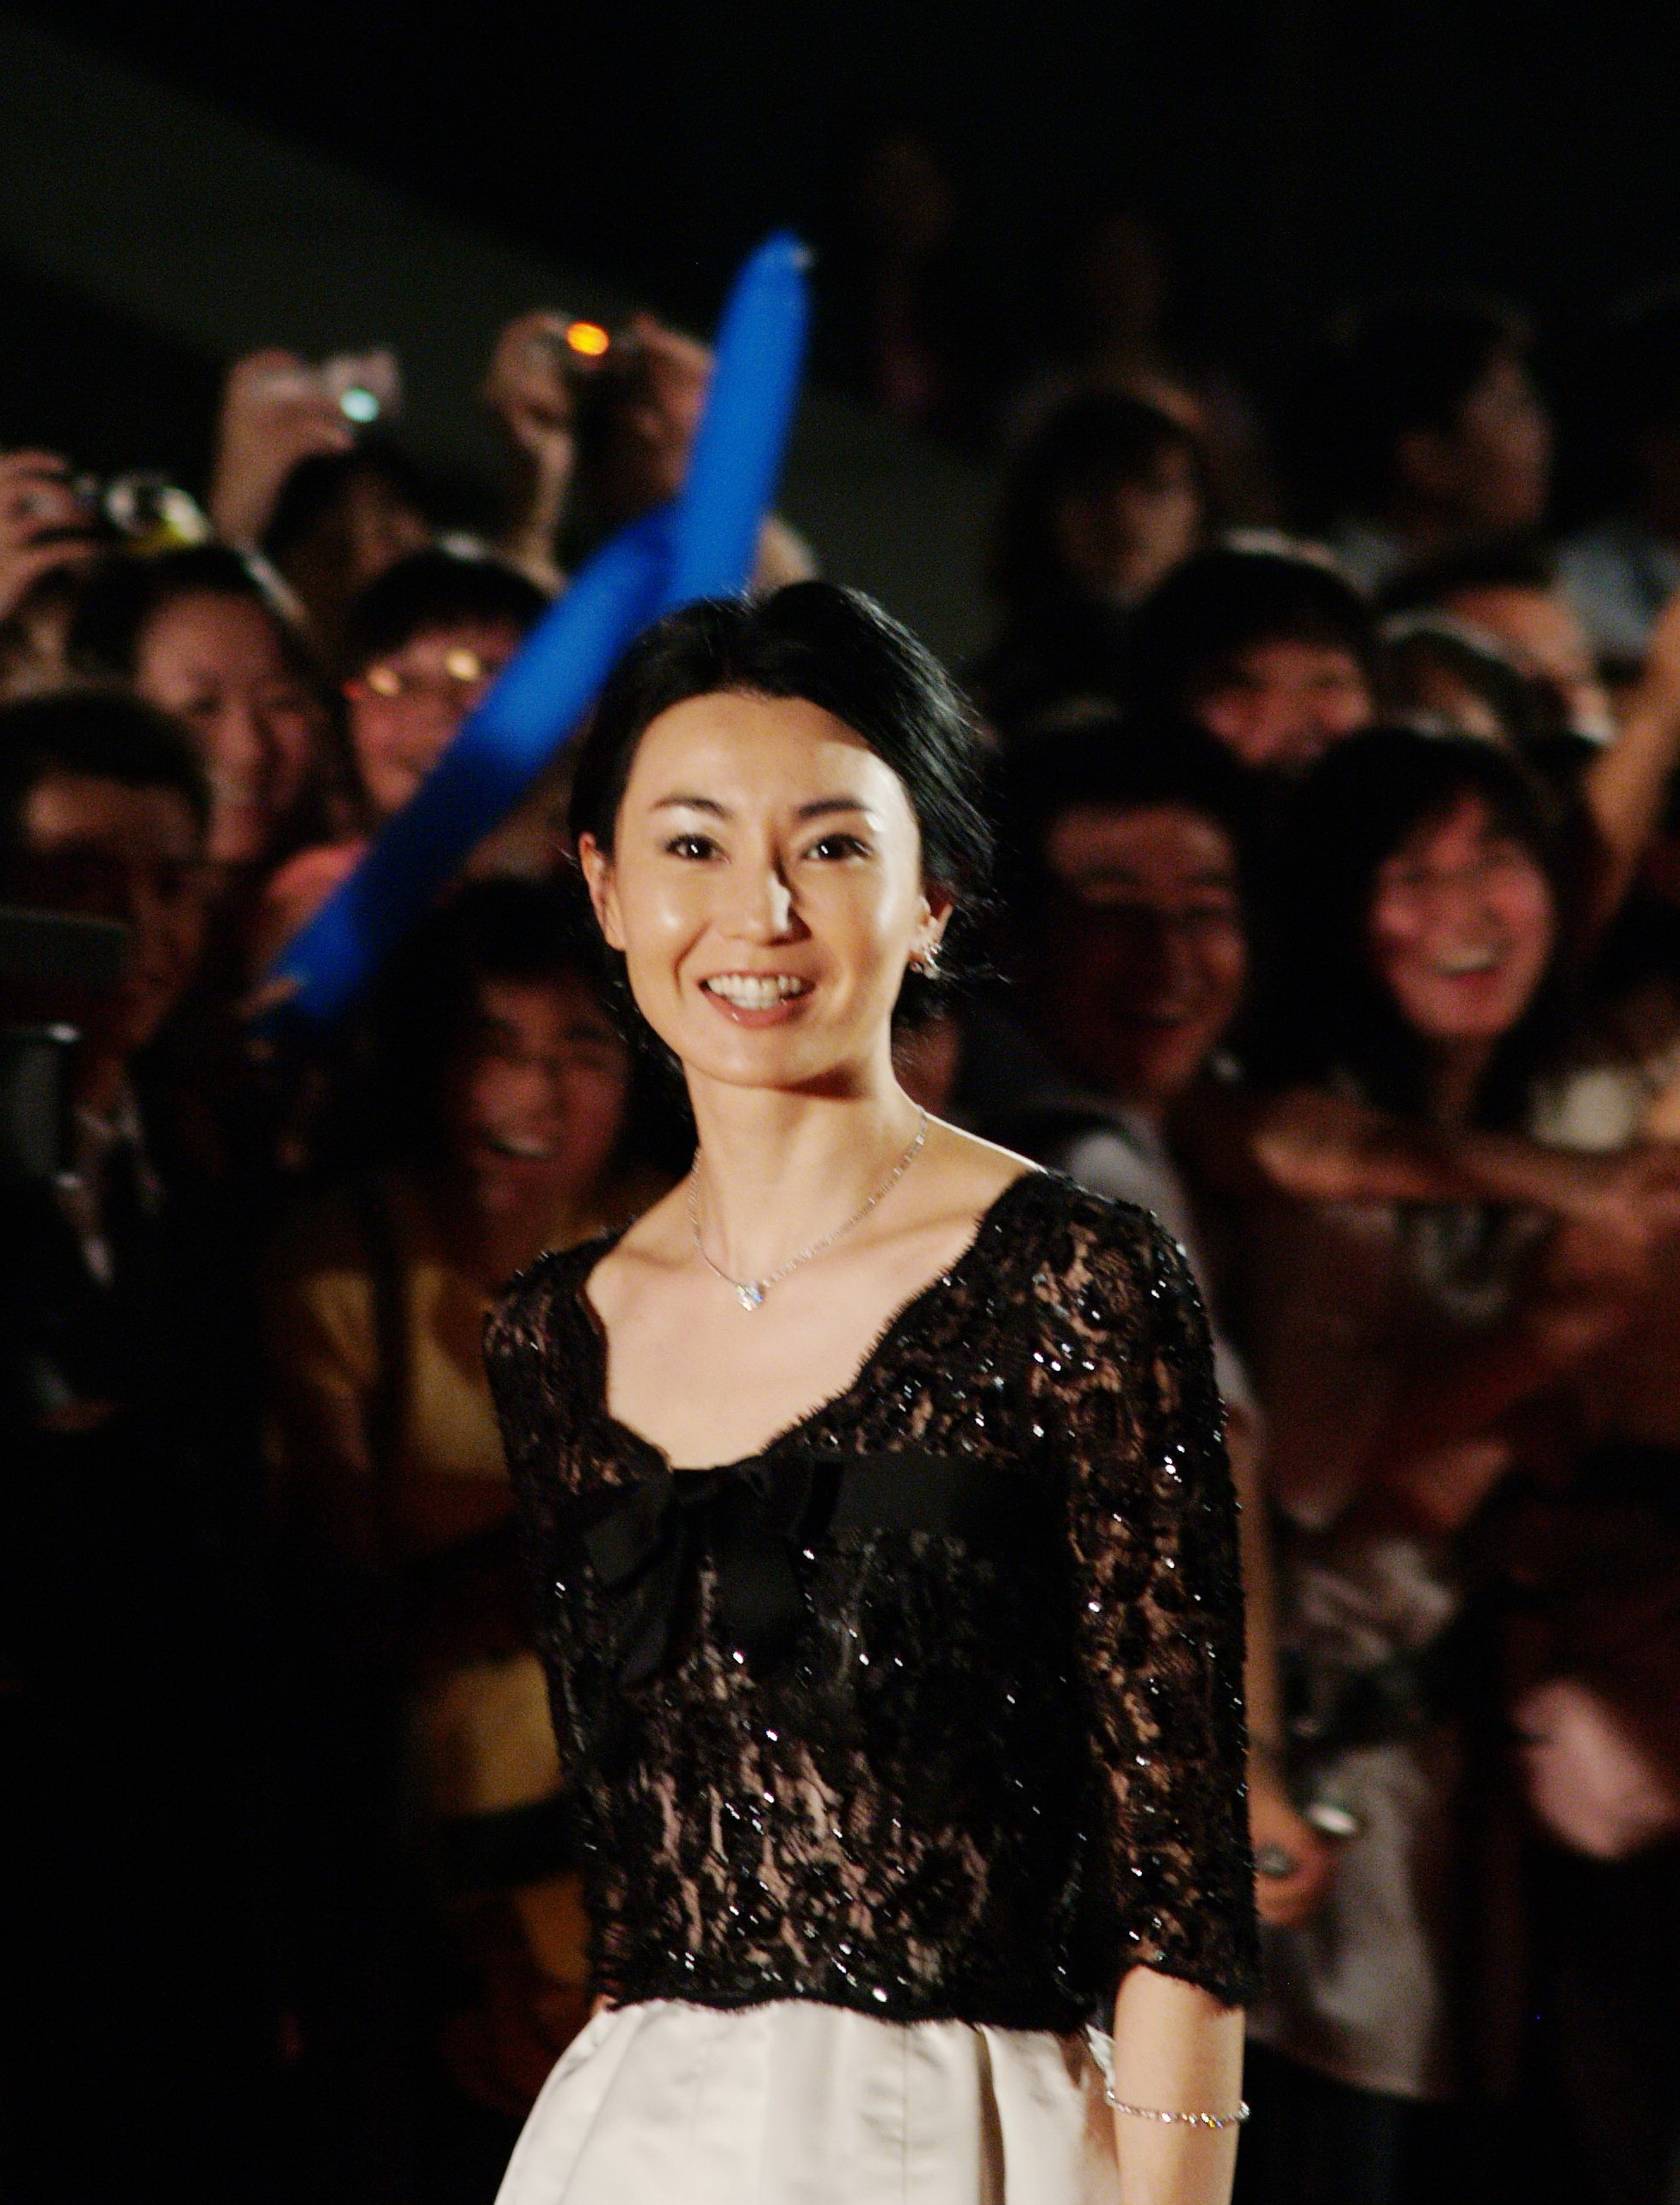 maggie cheung address phone number public records radaris publications